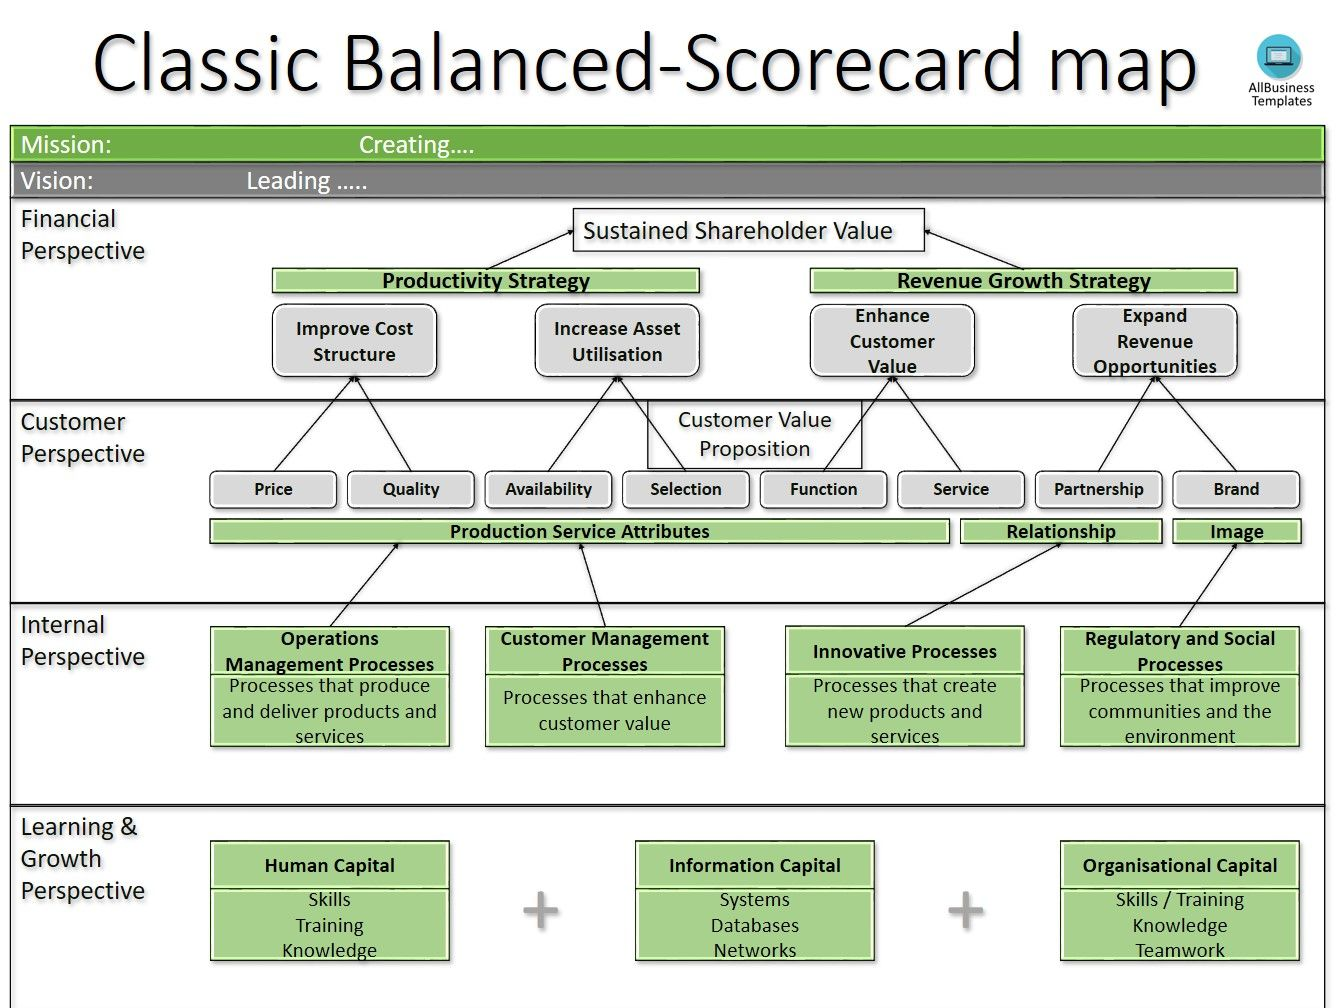 Business Balanced Scorecard Template Are You Looking For A Smart